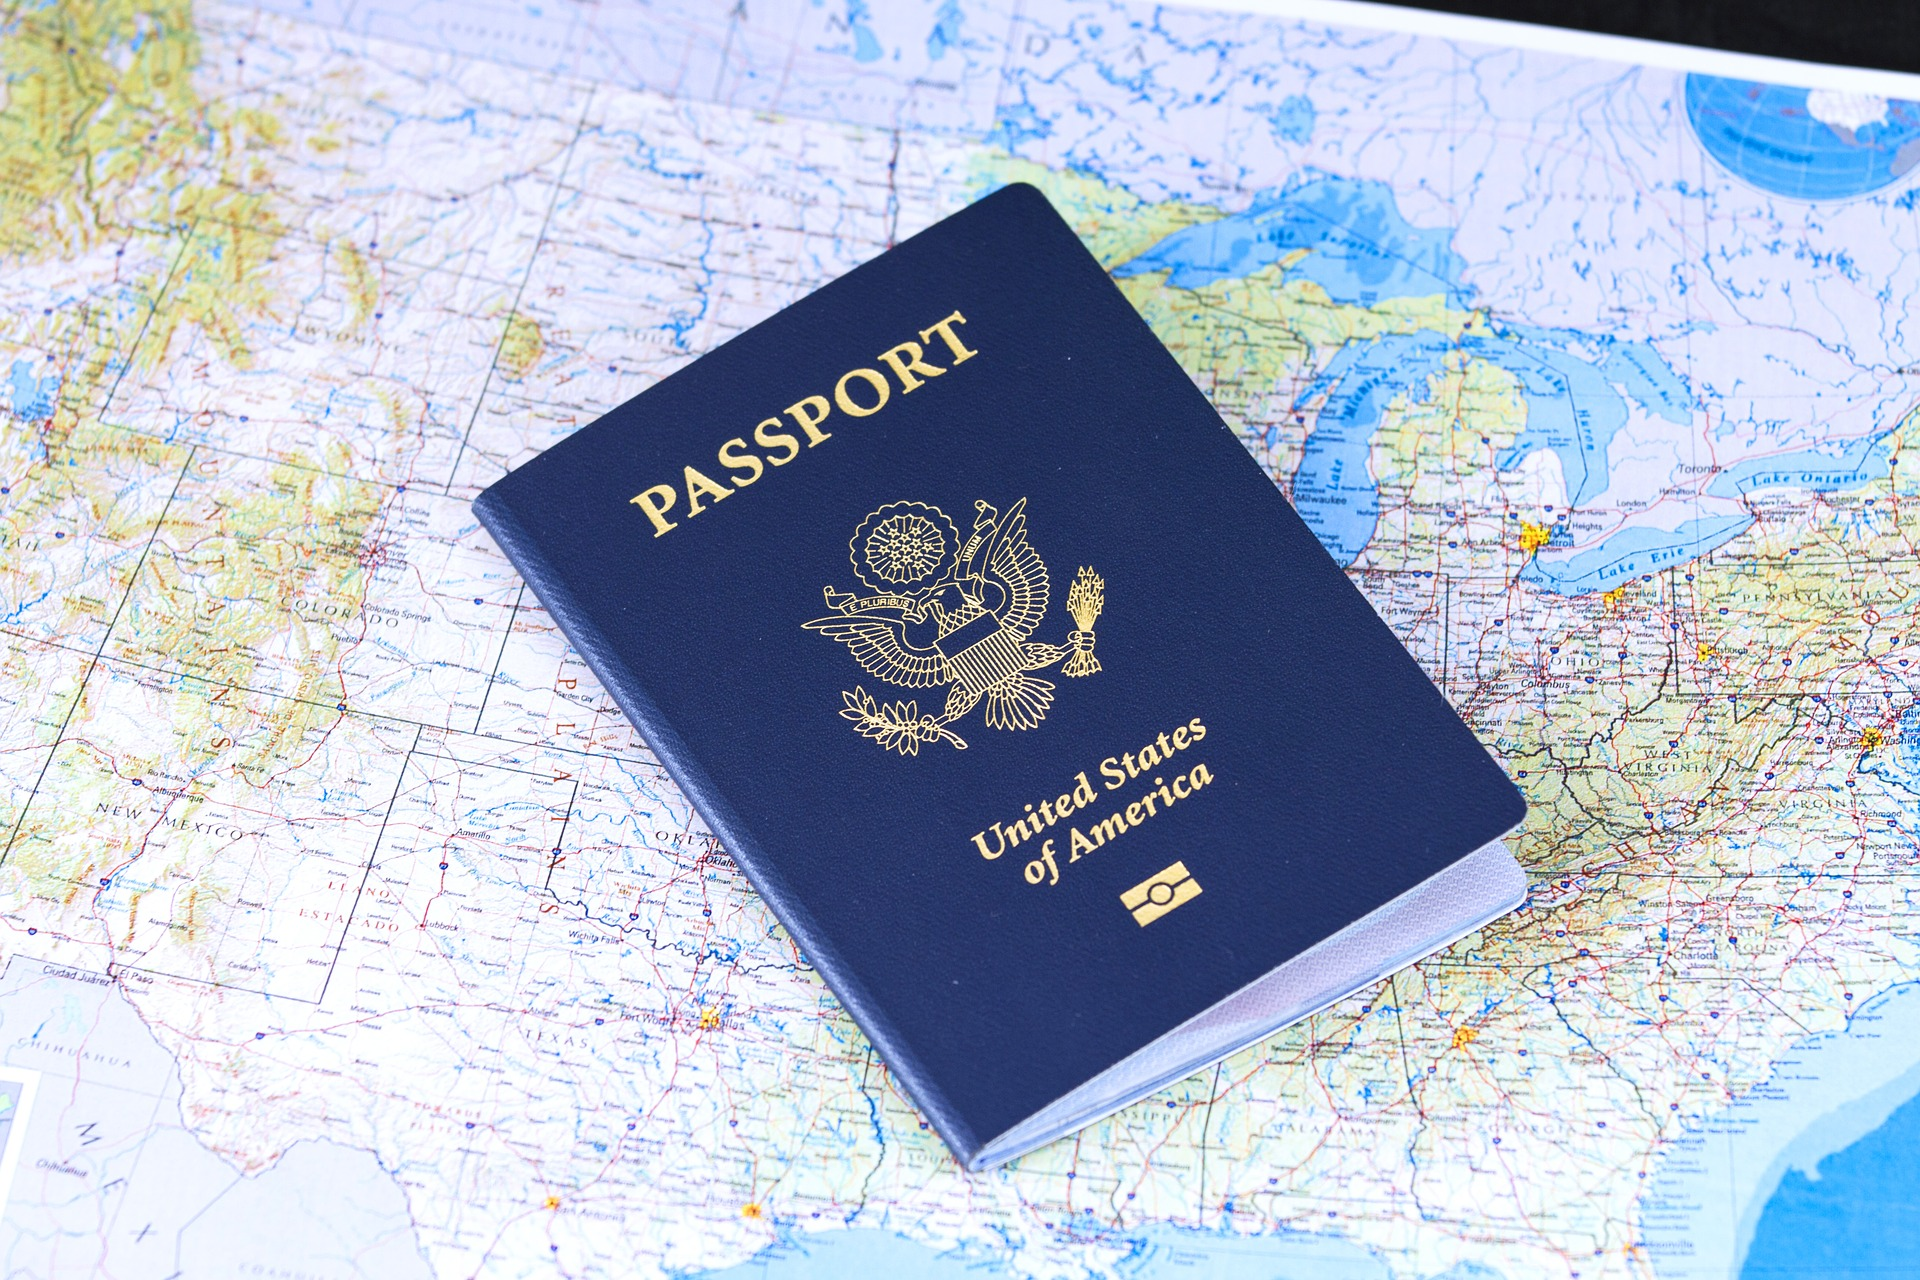 Cytis   . Pixabay.  Naturalization is the process by which U.S. citizenship is granted to a foreign citizen or national after meeting certain requirements.  Find out  if Naturalization is the right path for you!